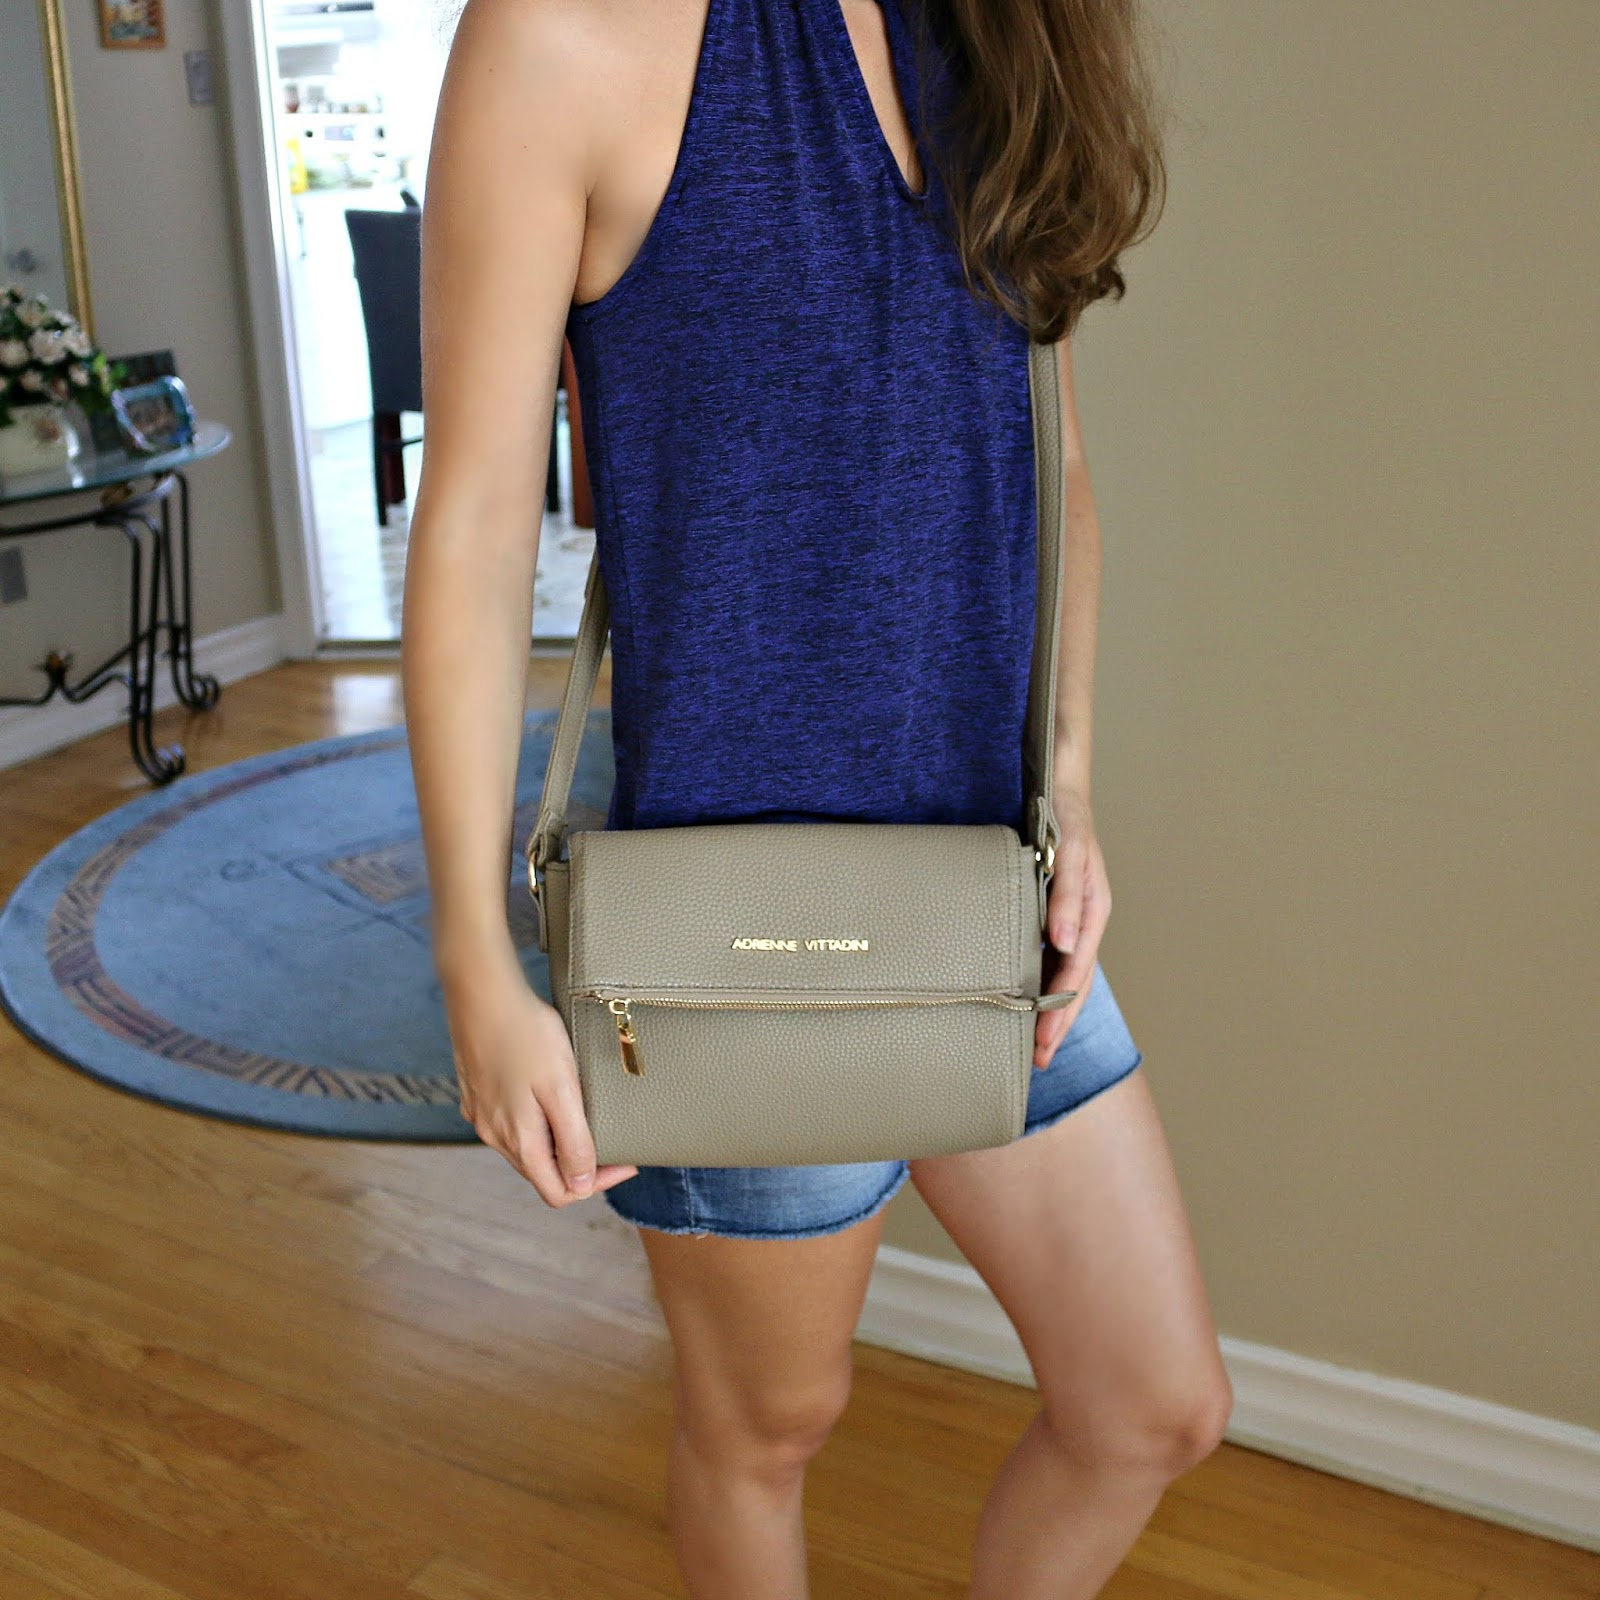 What's In My Bag Adrienne Vittadini Crossbody Bag Review